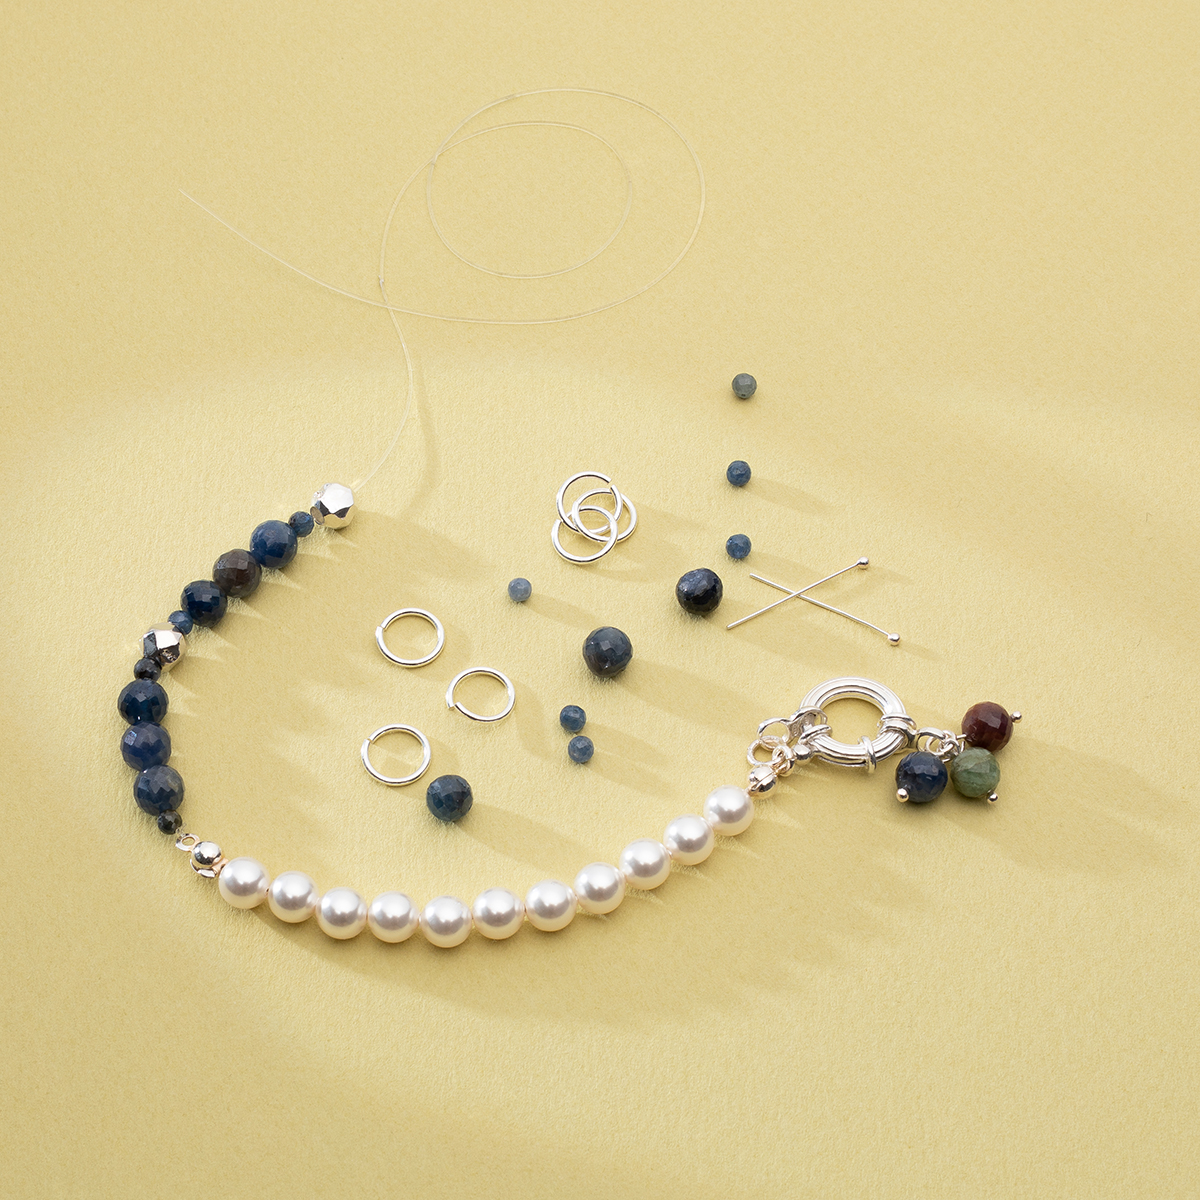 spring ring clasp with jumprings